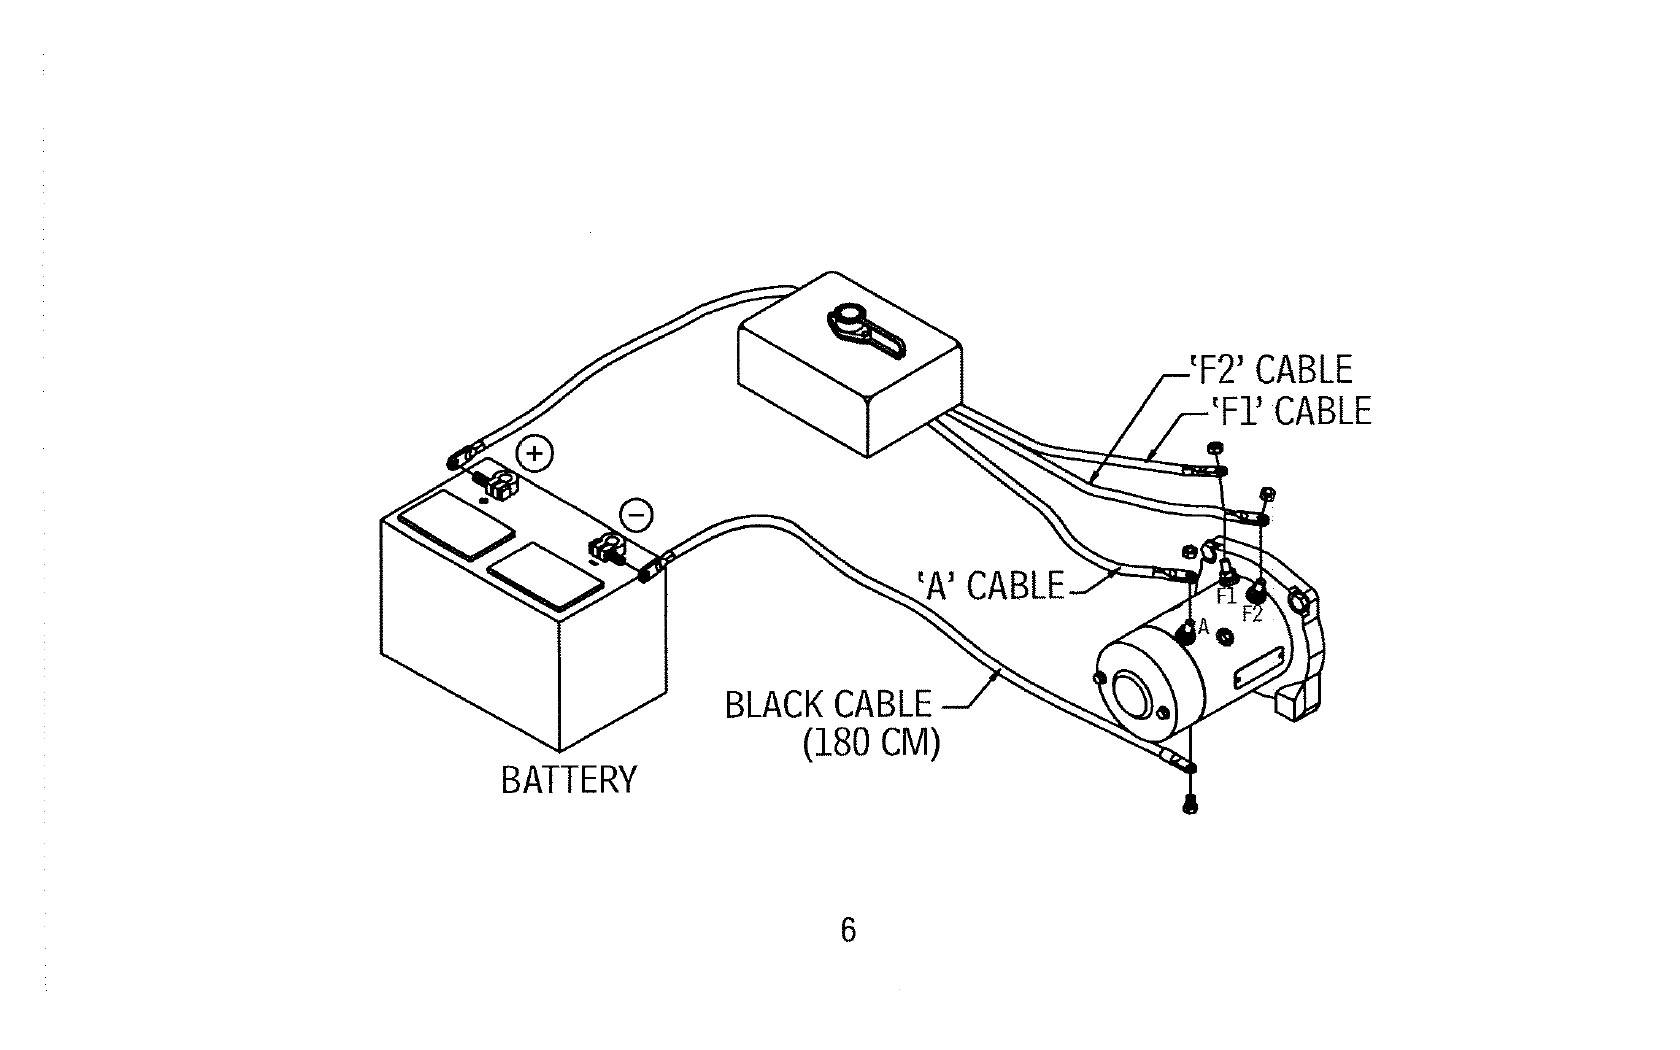 warn_cables ramsey rep8000 winch solenoid wiring diagram pirate4x4 warn 12000 winch wiring diagram at readyjetset.co